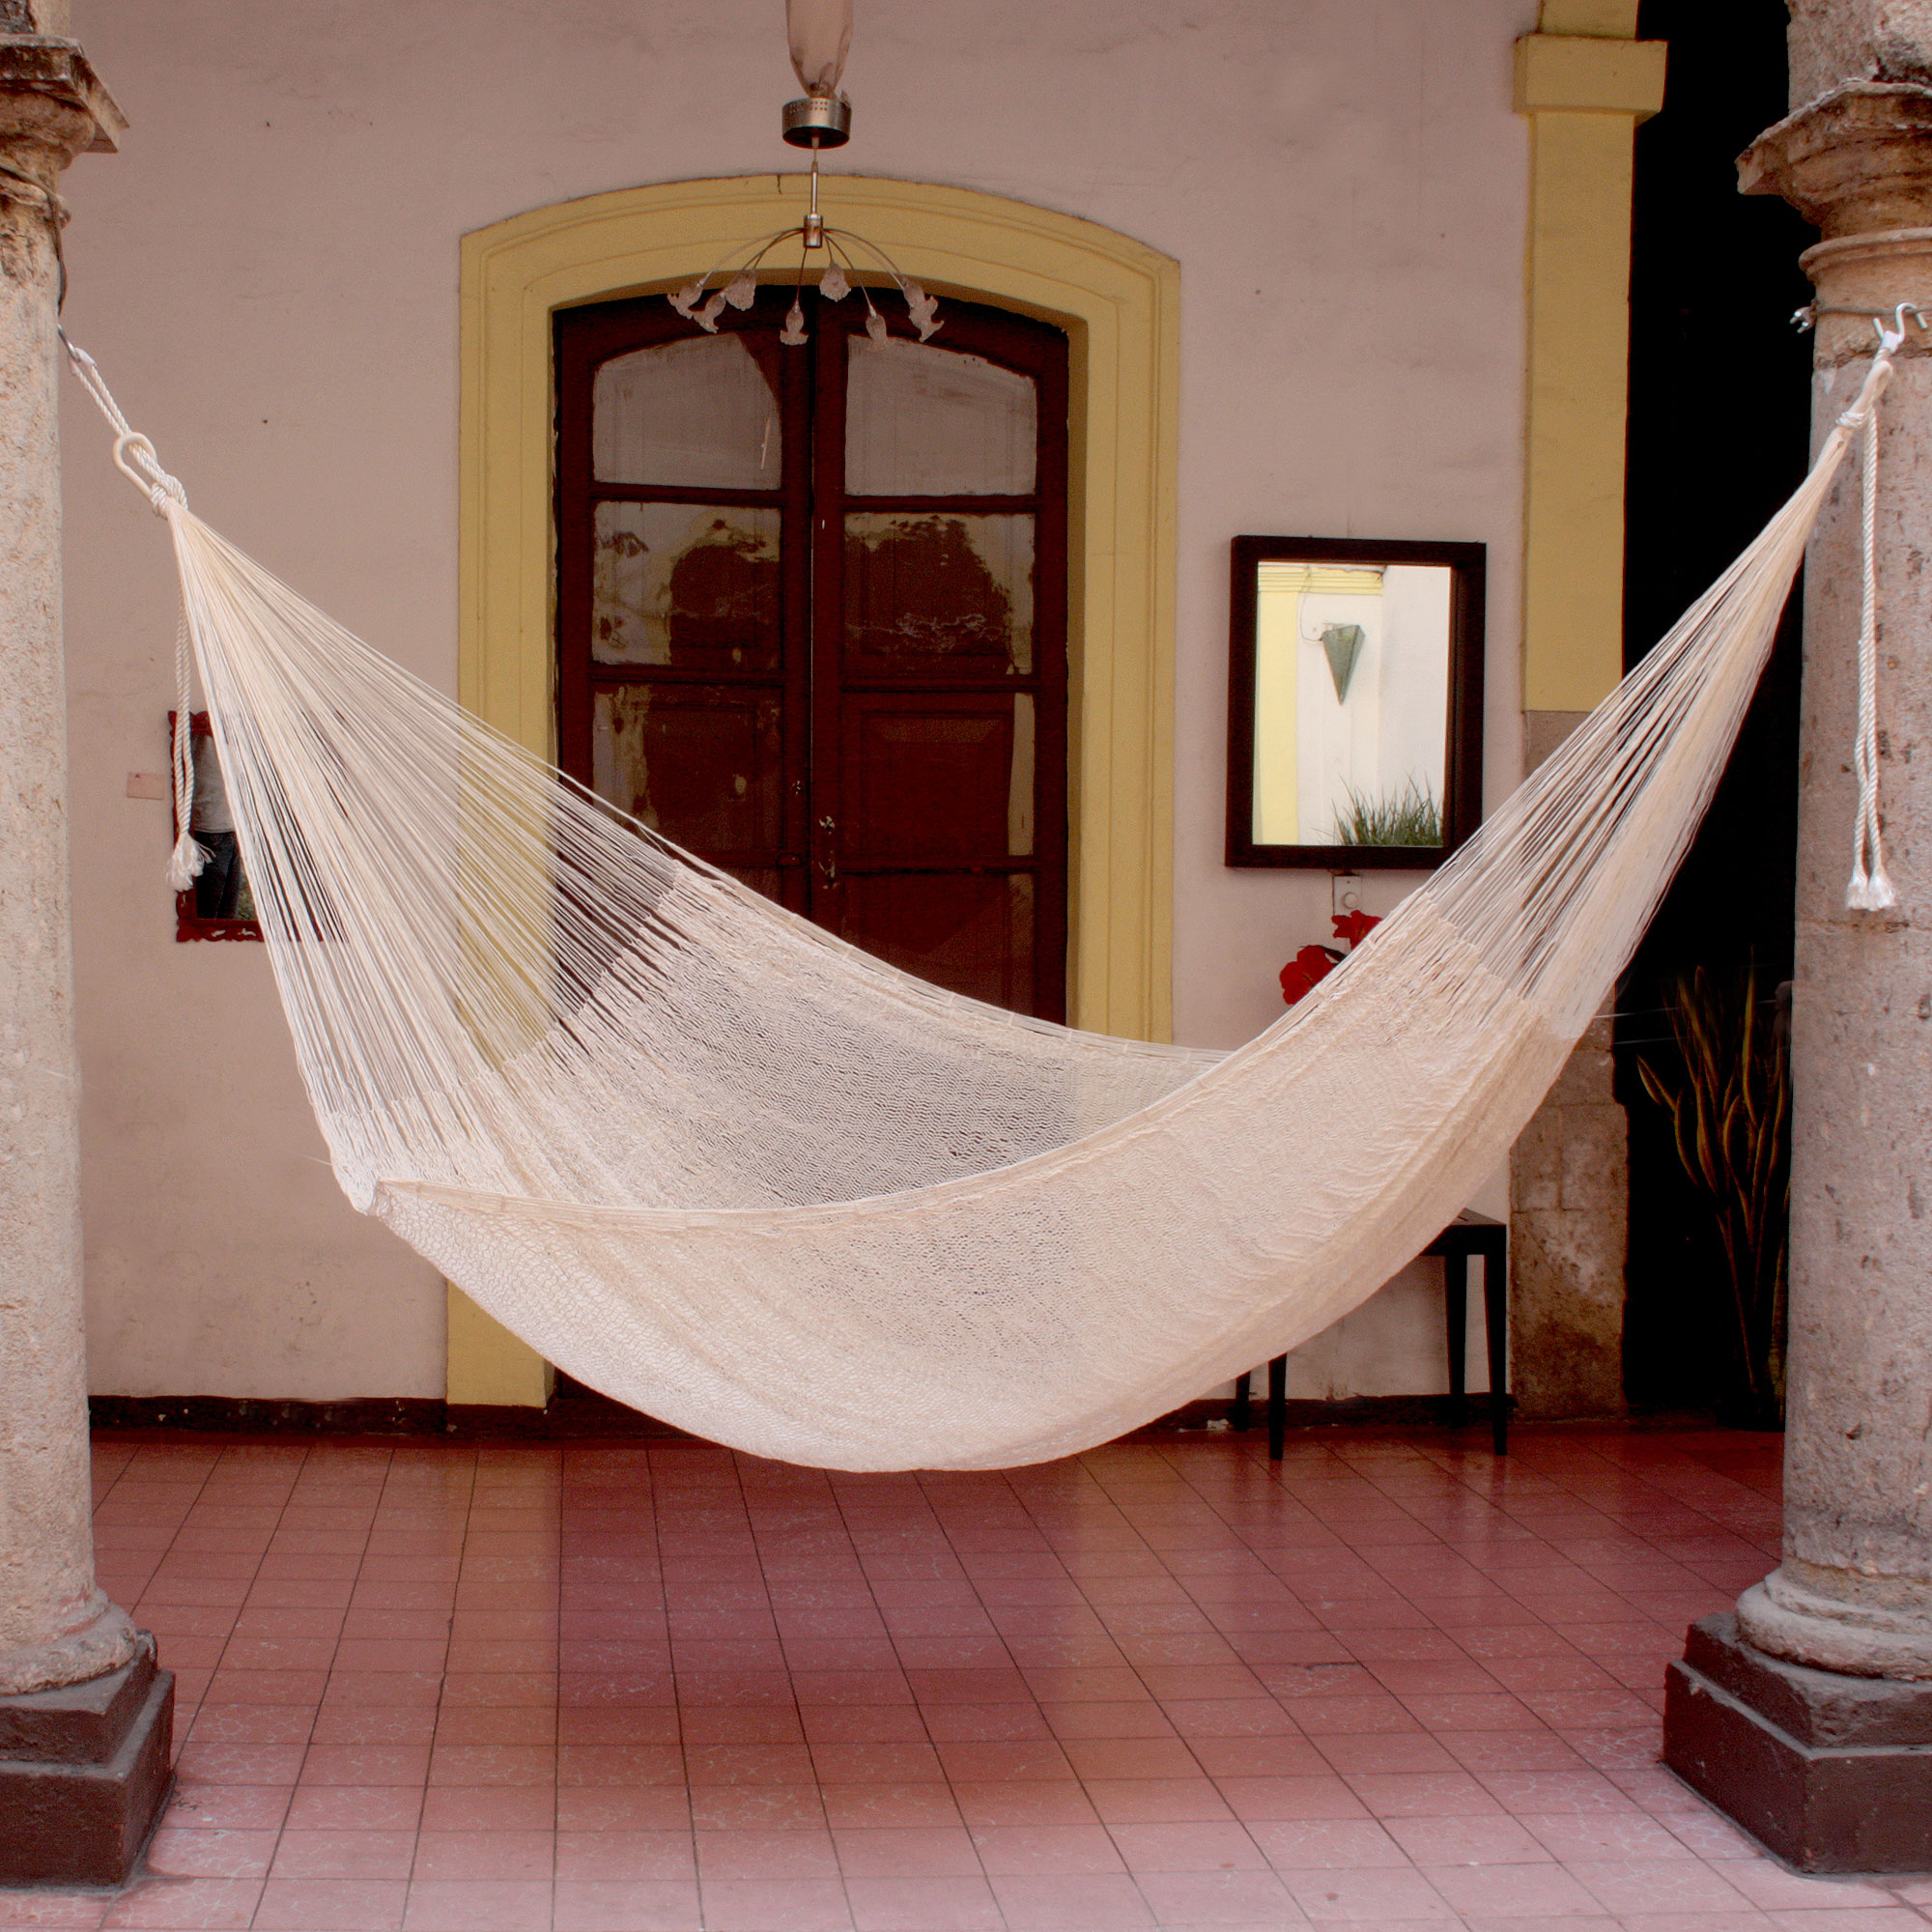 Cotton hammock, 'Natural Comfort' (double) handcrafted hammock new mother gift